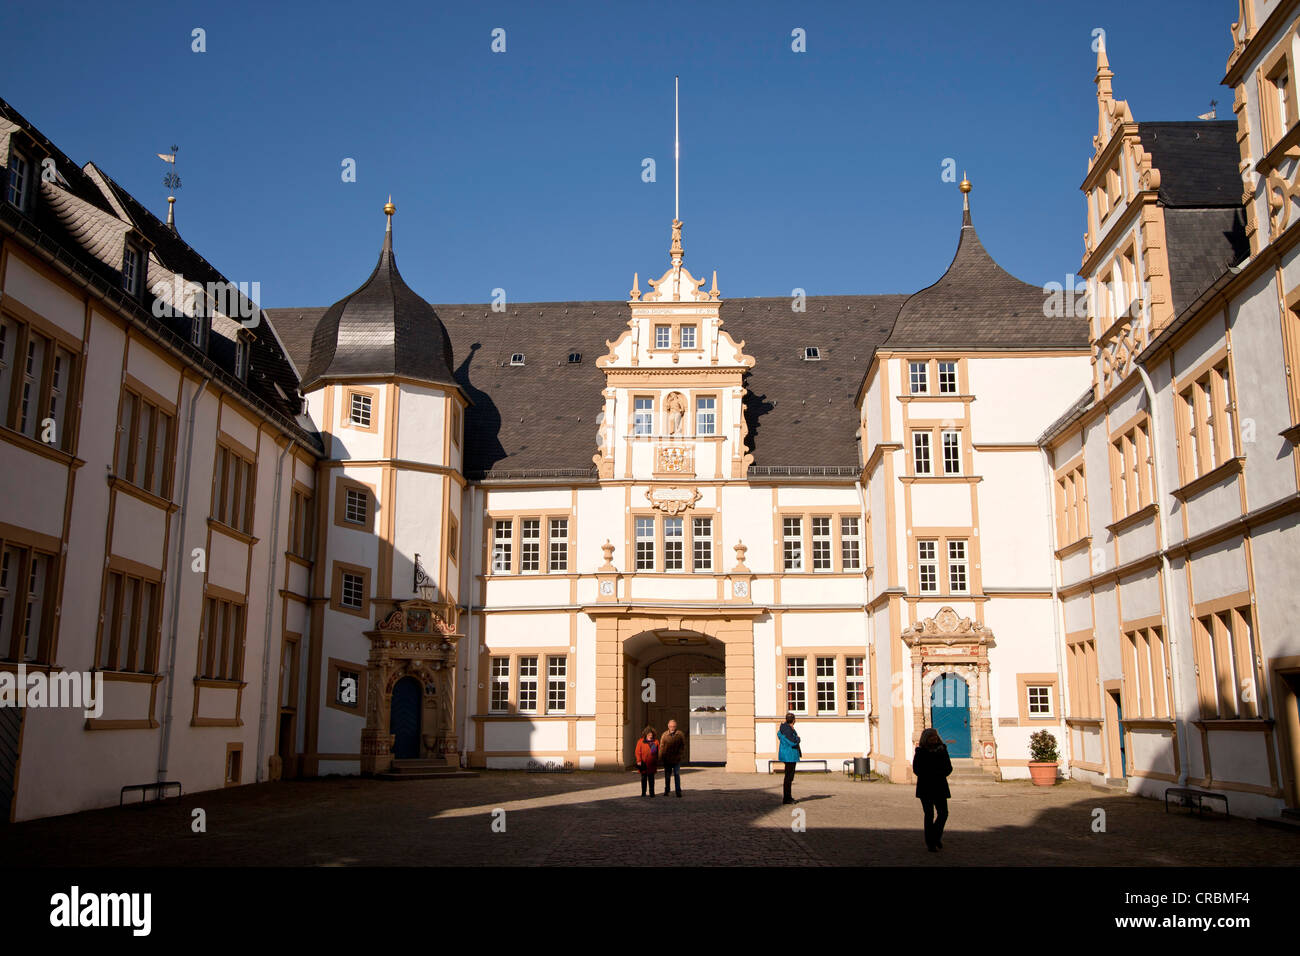 Courtyard of Schloss Neuhaus castle, an outstanding Weser-Renaissance building in Paderborn, North Rhine-Westphalia - Stock Image